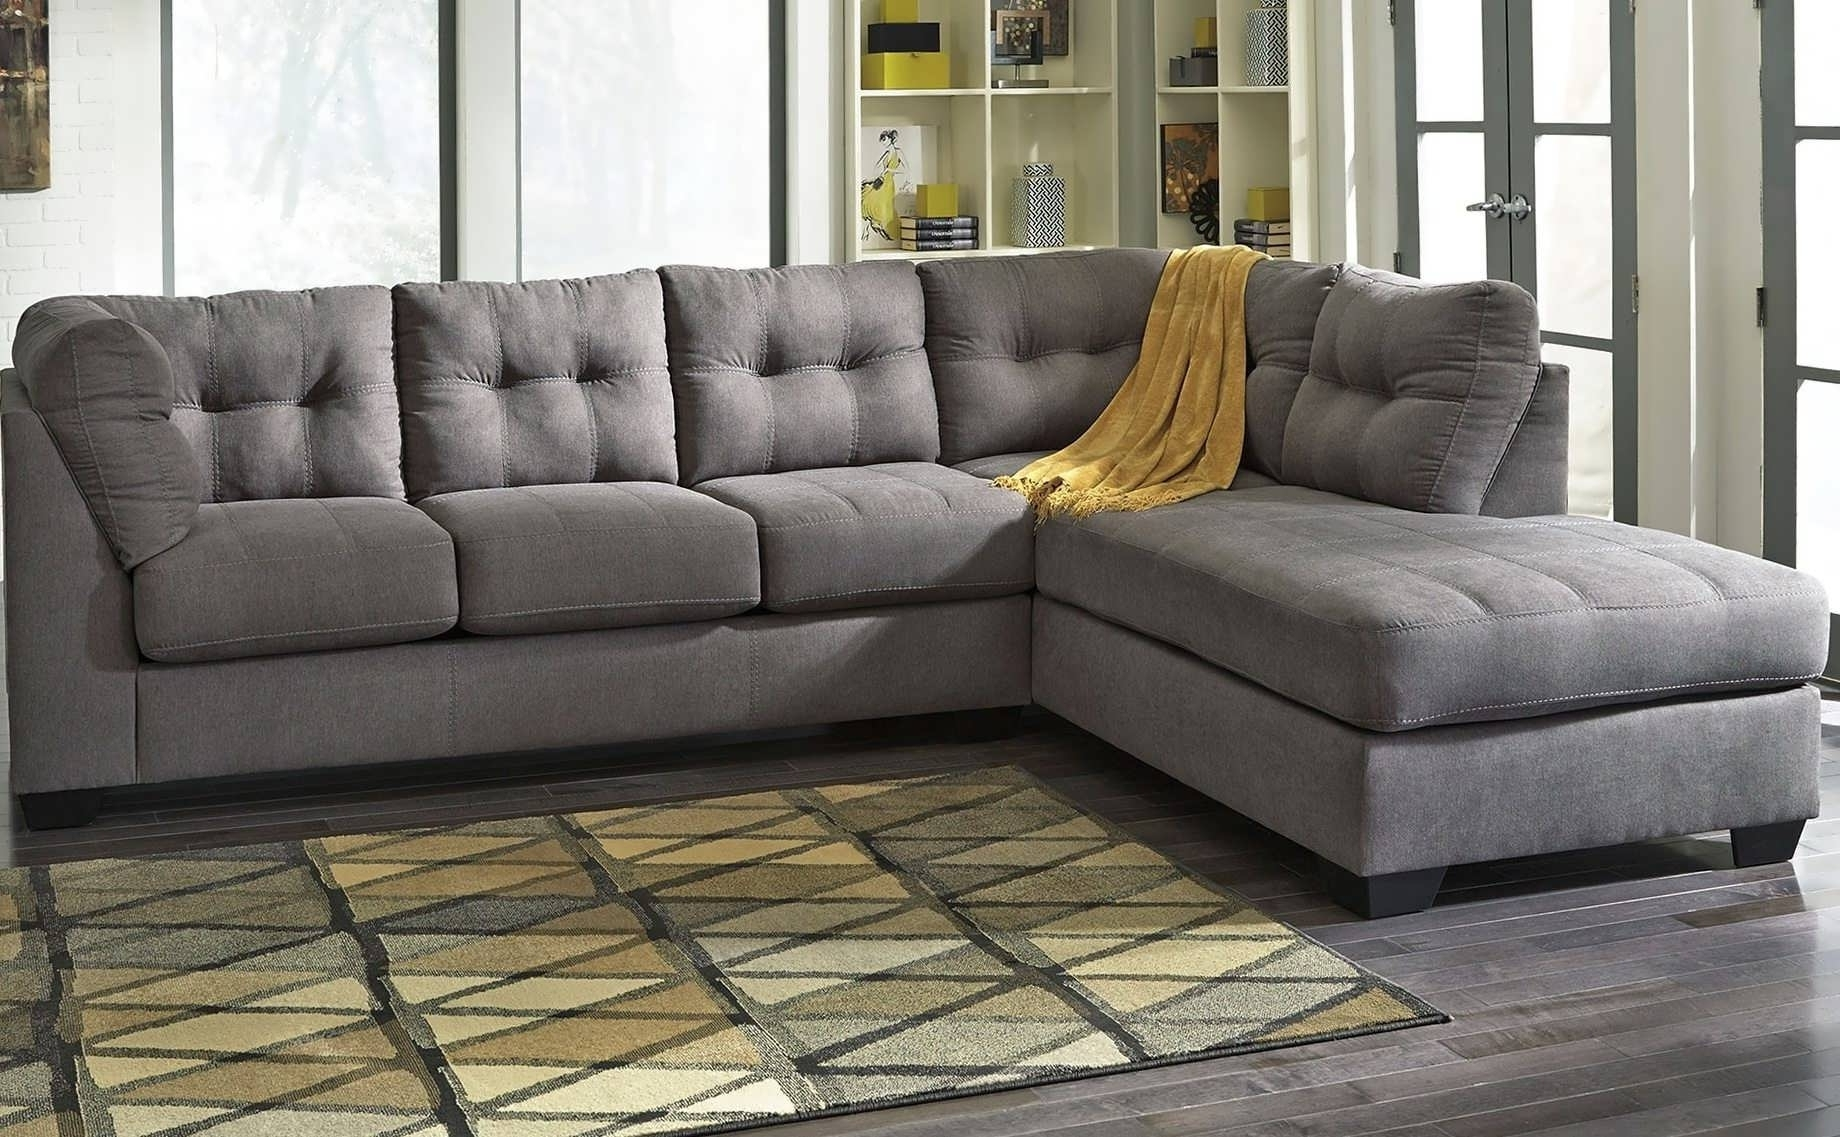 Sofa : Grey Sectional With Chaise Oversized Sectional Sofa White With Regard To Current Grey Sectional Sofas With Chaise (View 15 of 15)